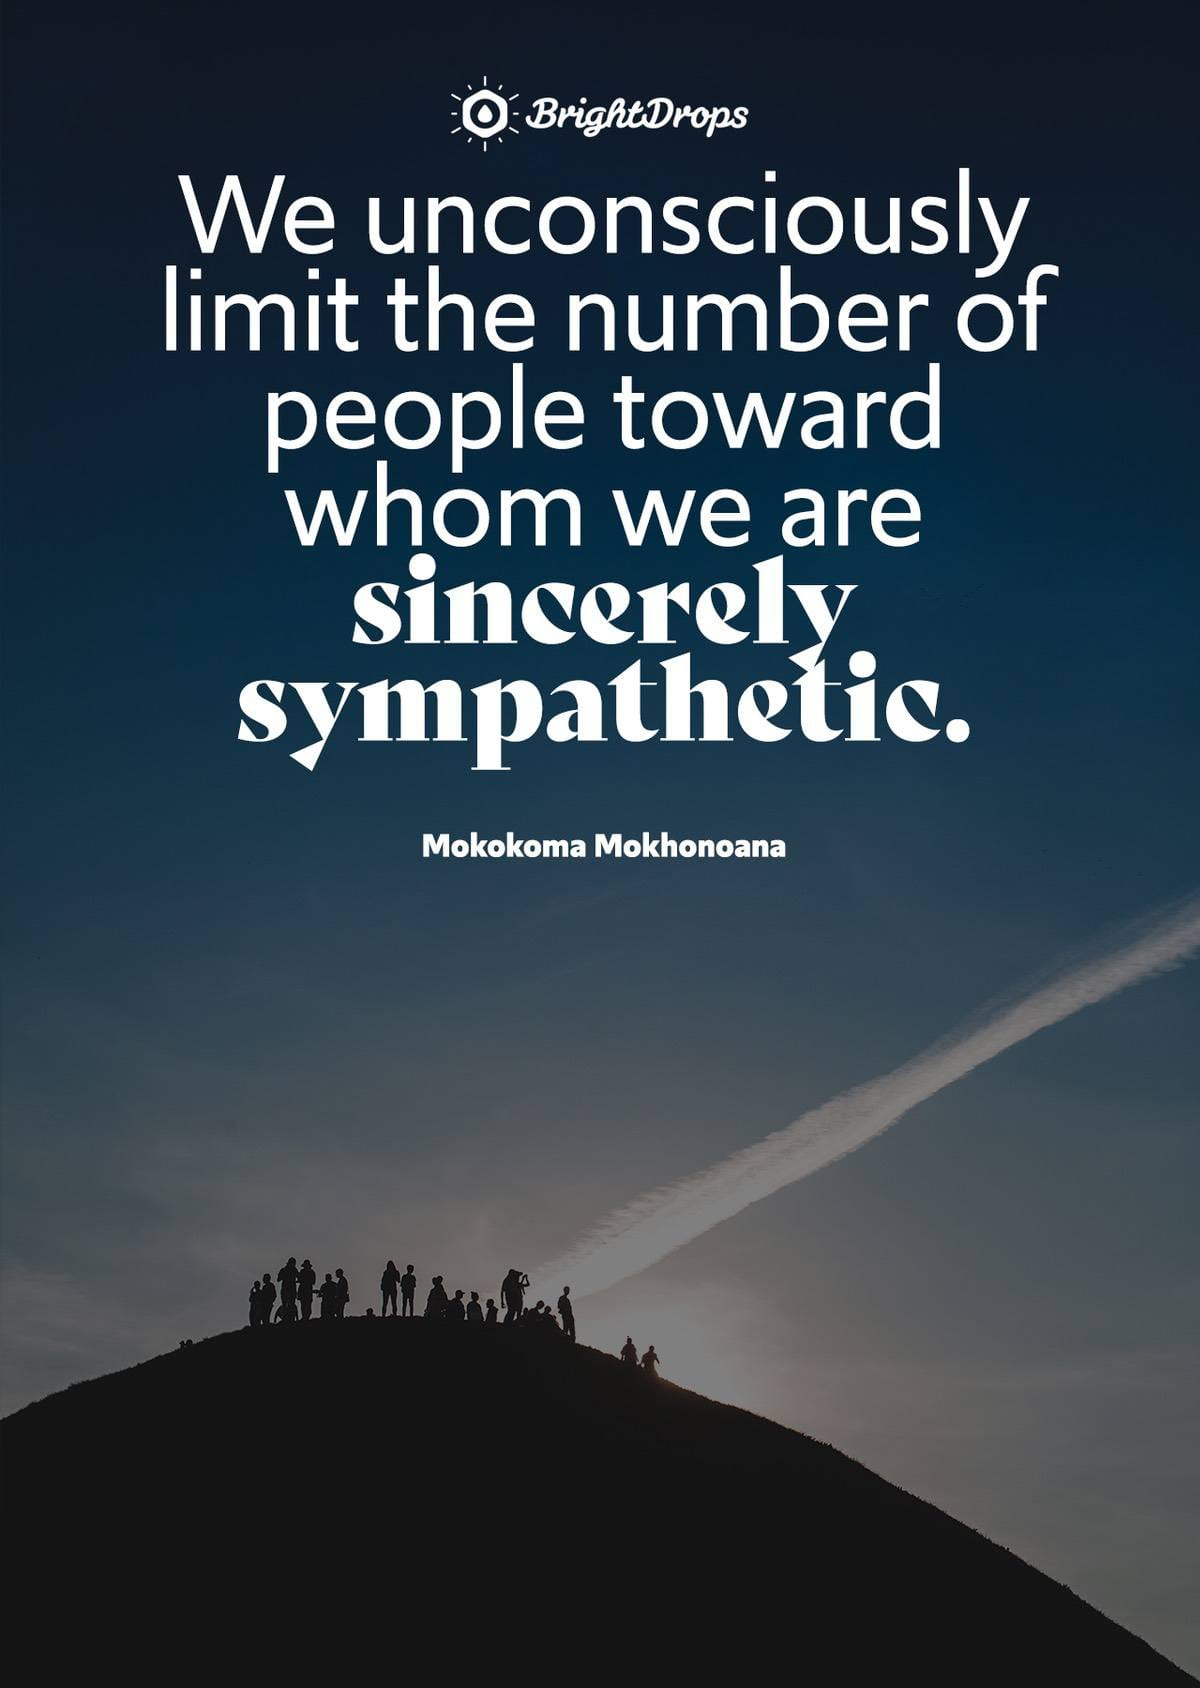 """We unconsciously limit the number of people toward whom we are sincerely sympathetic."" - Mokokoma Mokhonoana"